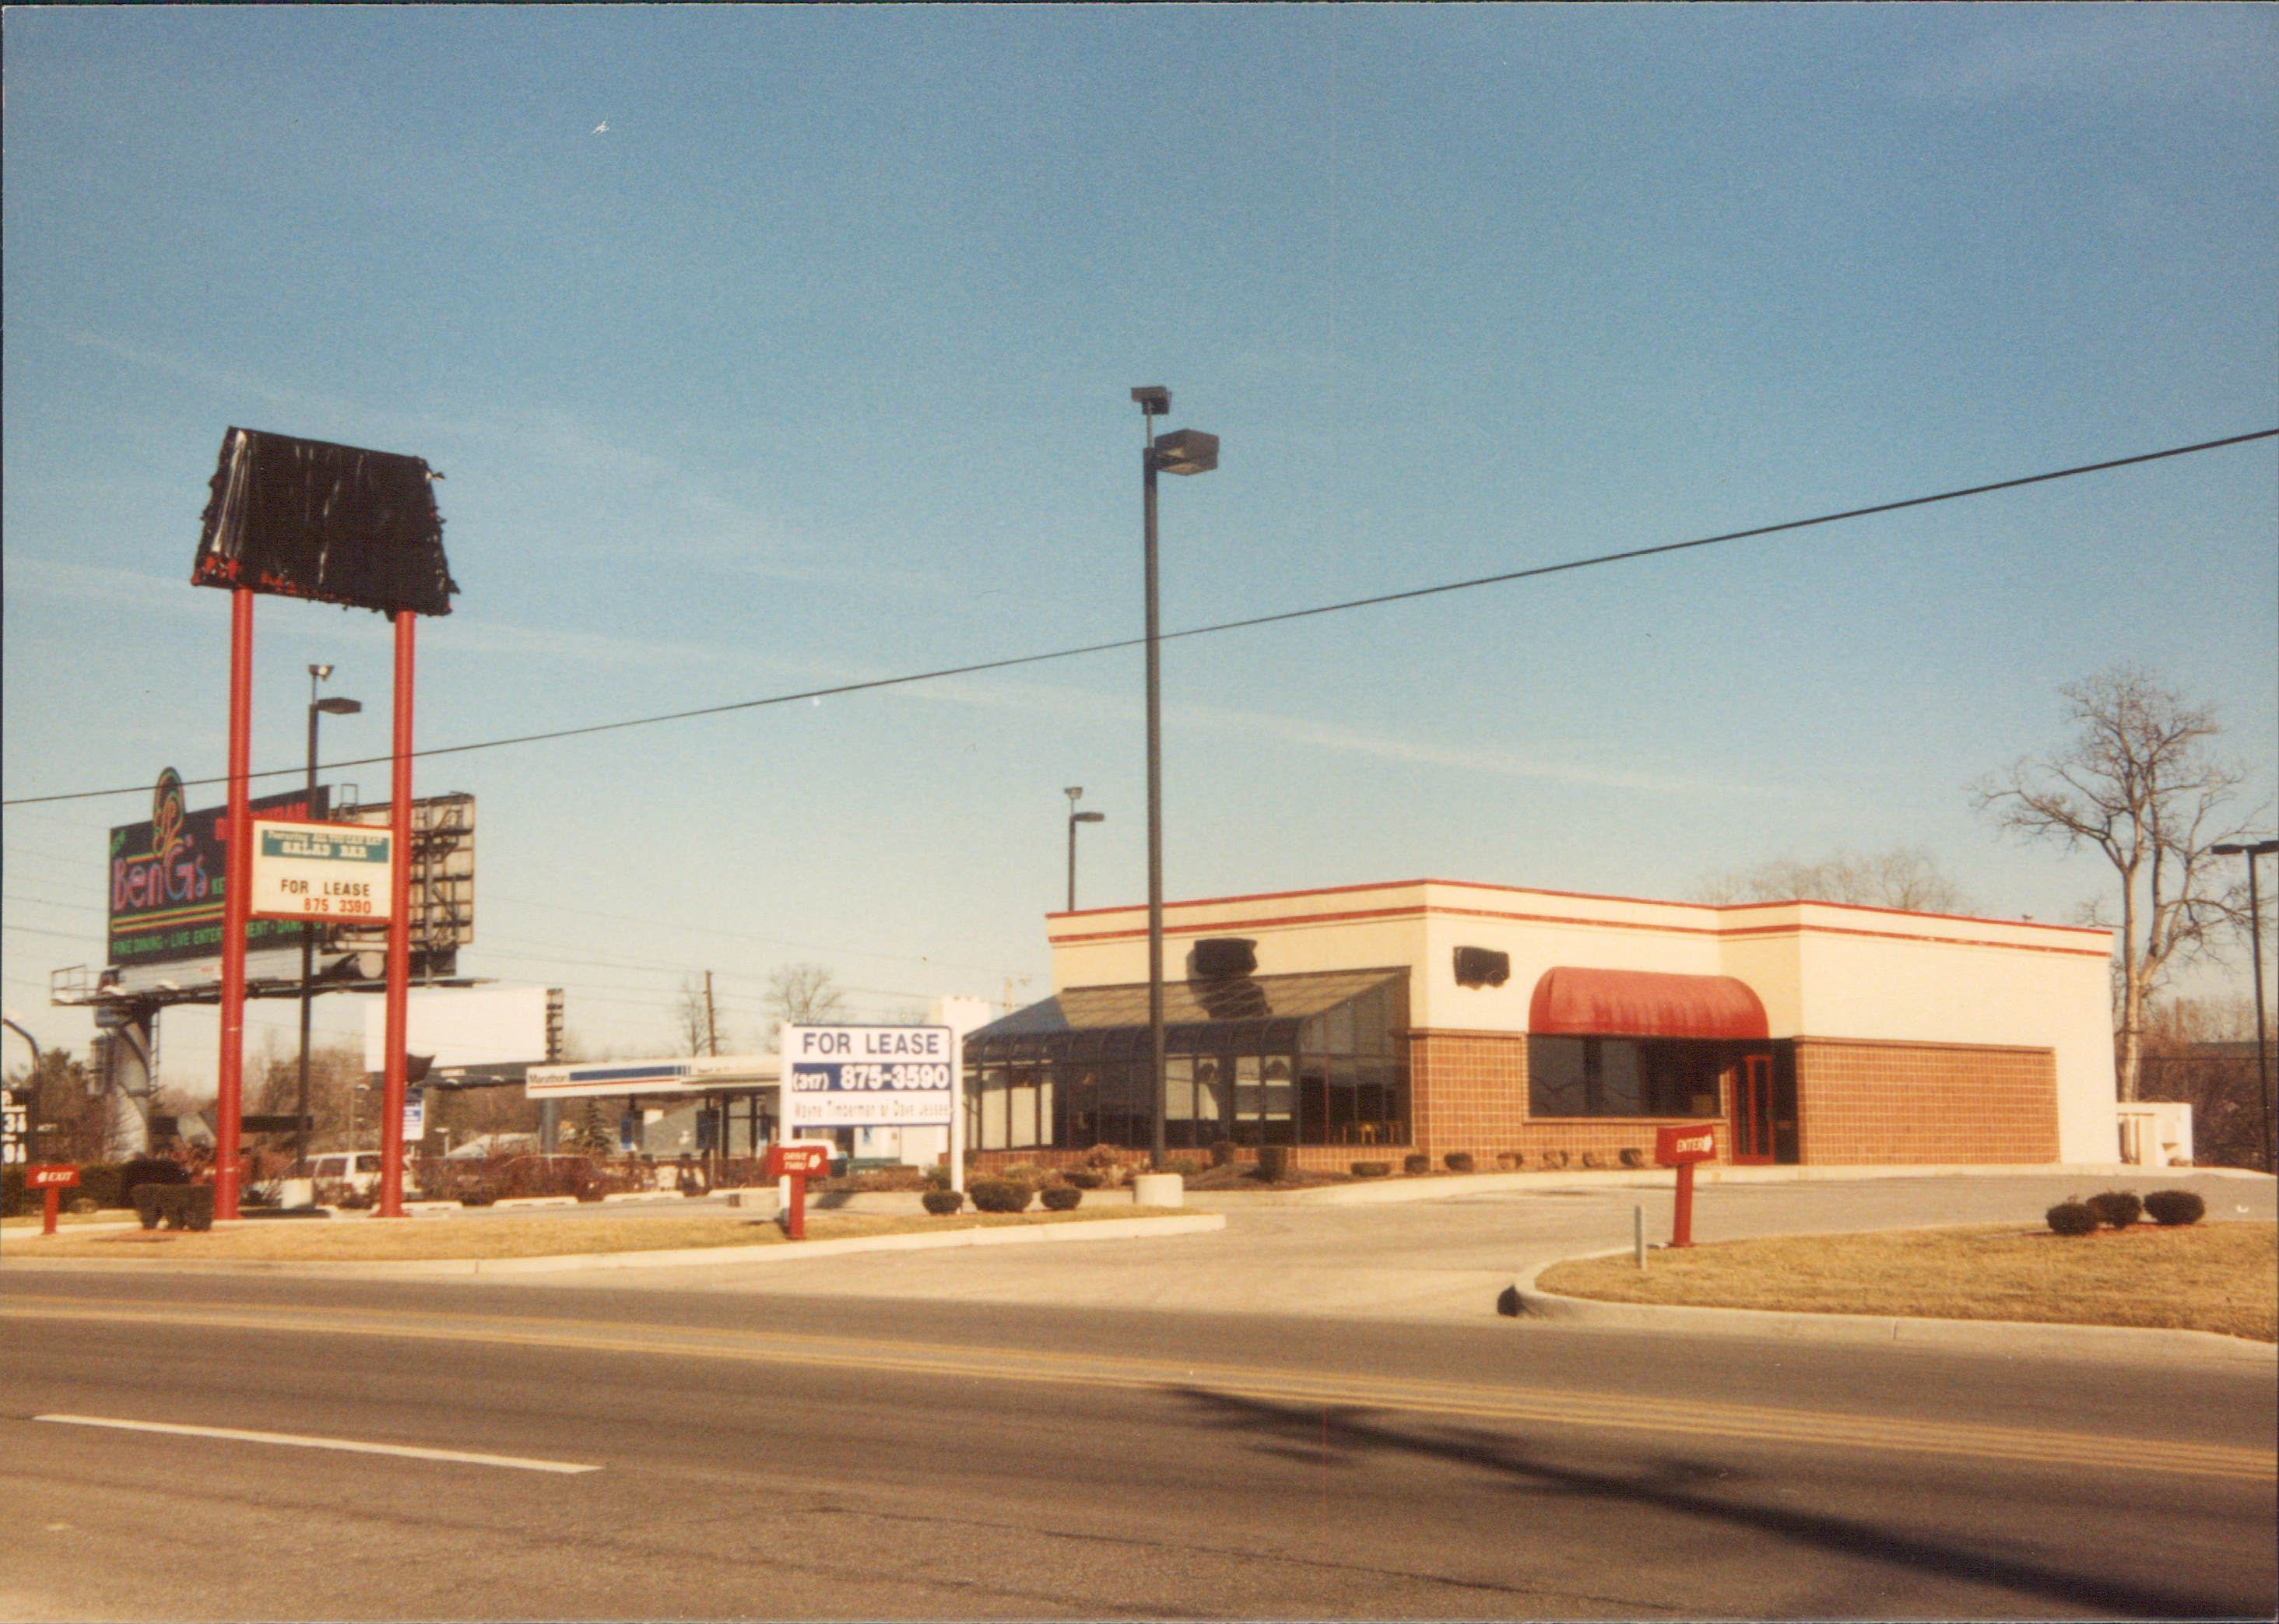 Rax Roast Beef- 86th & Westfield Blvd. (CLOSED & SHUT DOWN) Indianapolis, Indiana.